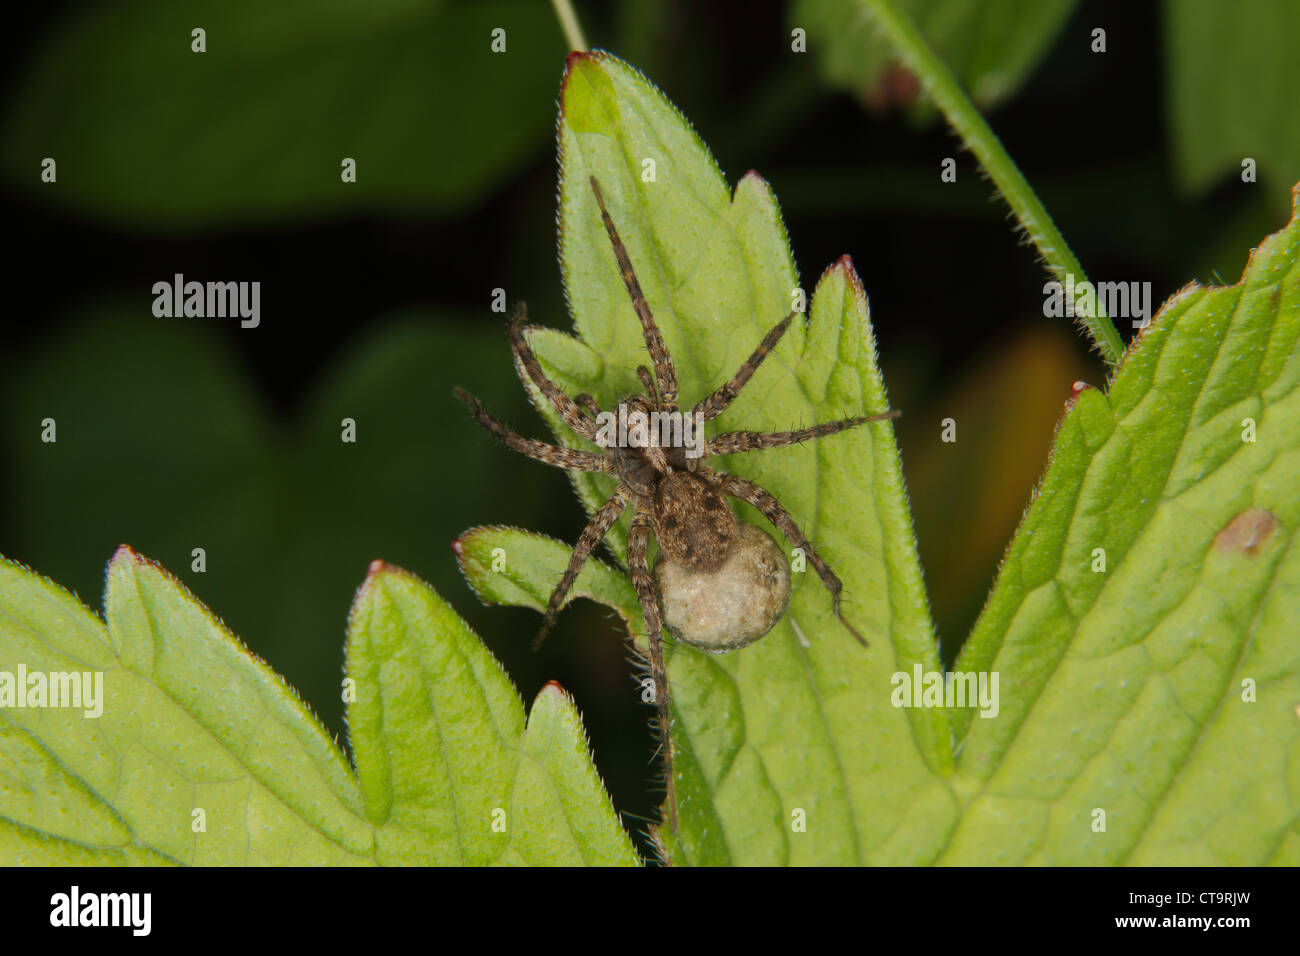 Wolf spider (Pardosa lugubris) - Female with cocoon on a leaf - Stock Image